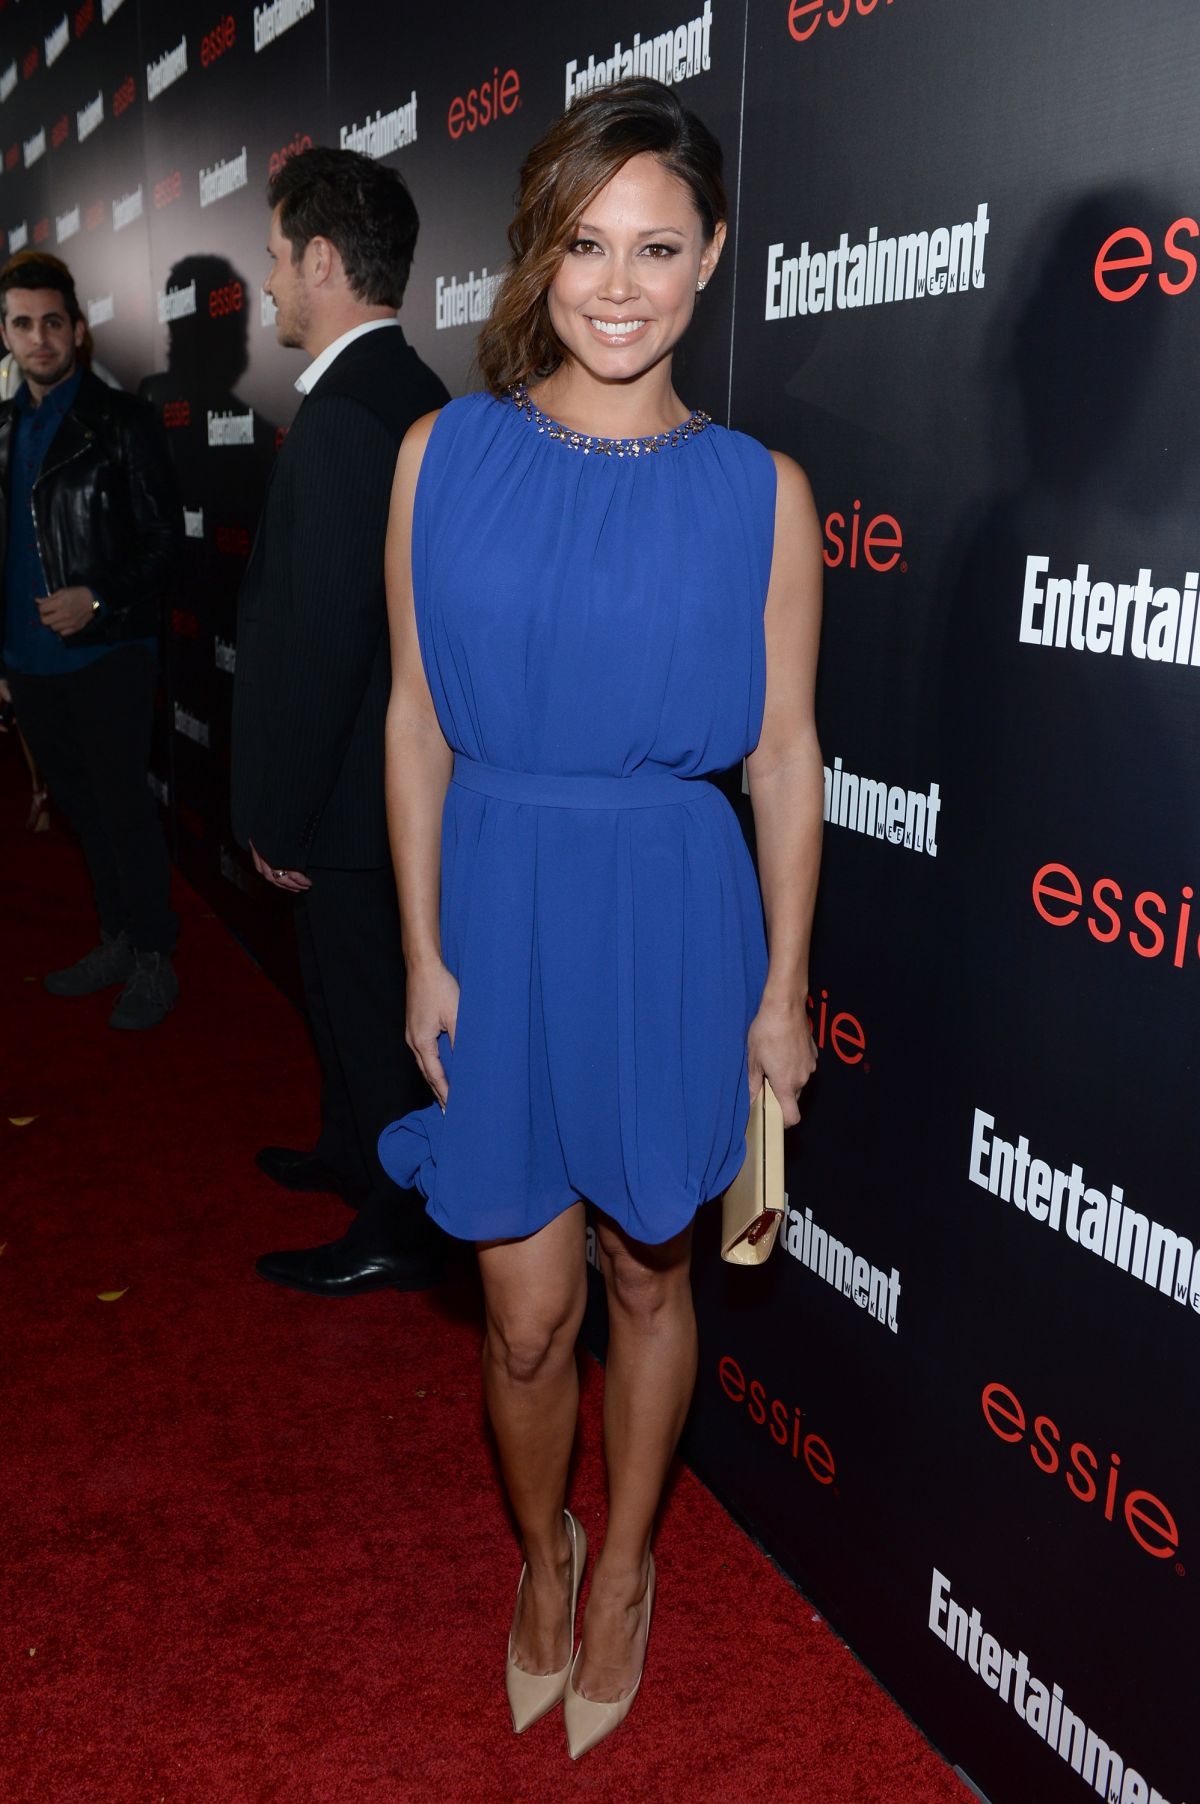 VANESSA MINNILLO at Entertainment Weekly Celebration Honoring SAG Awards Nominees